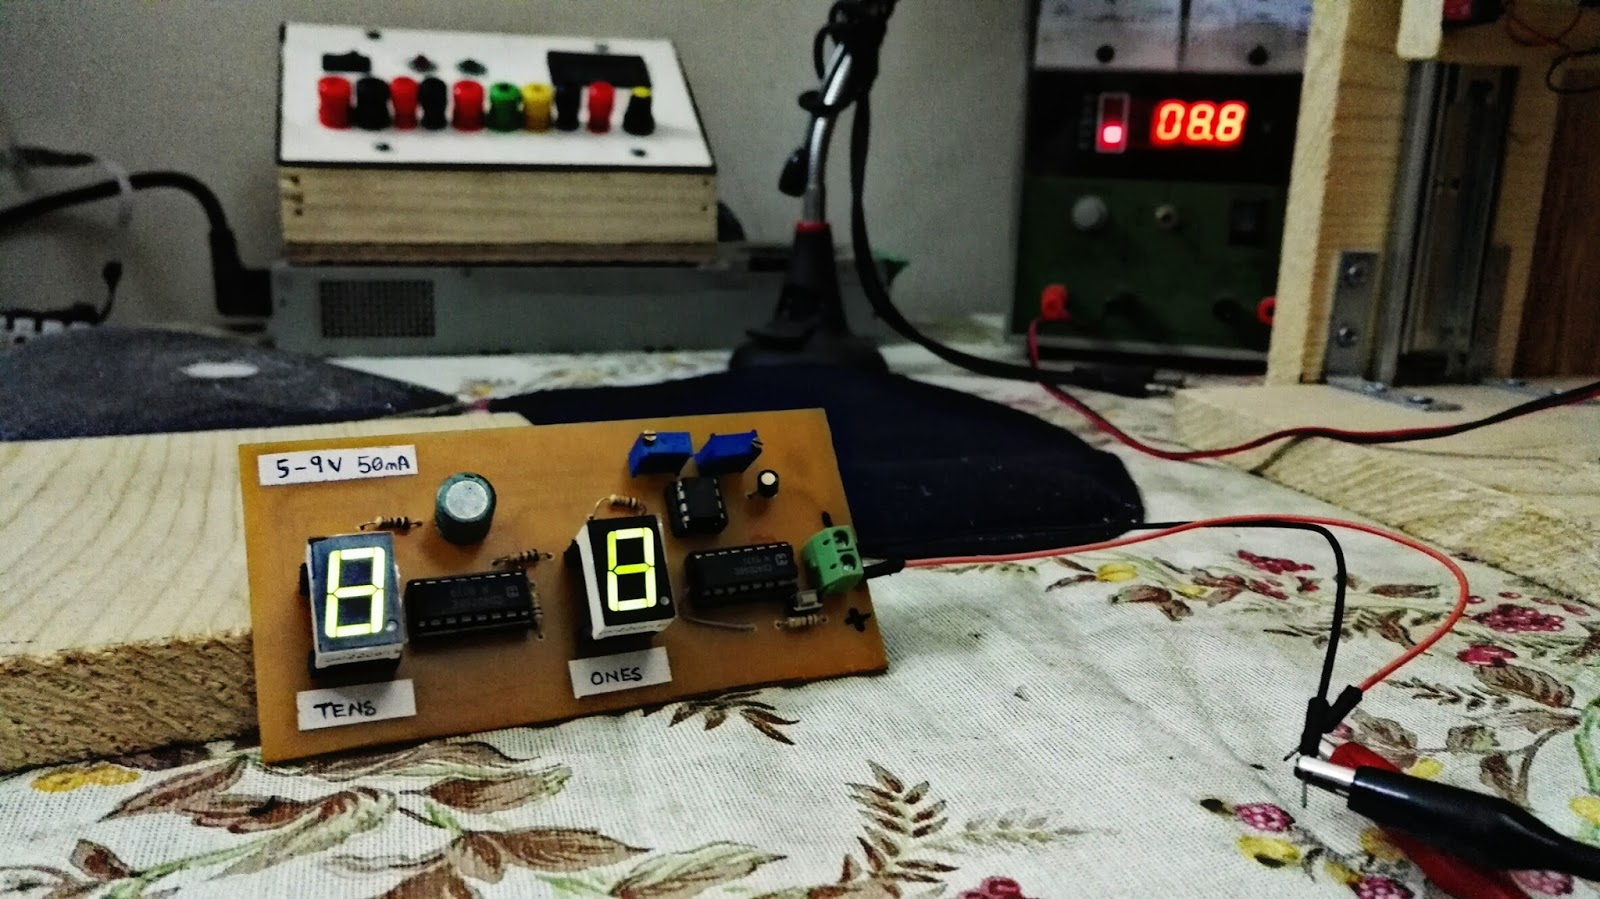 Diy Event Counter Clock Using 555 Timer And Cd4026b Sciengit Digit 7 Segment Display Arduino Also Circuit 4026 Project Picture